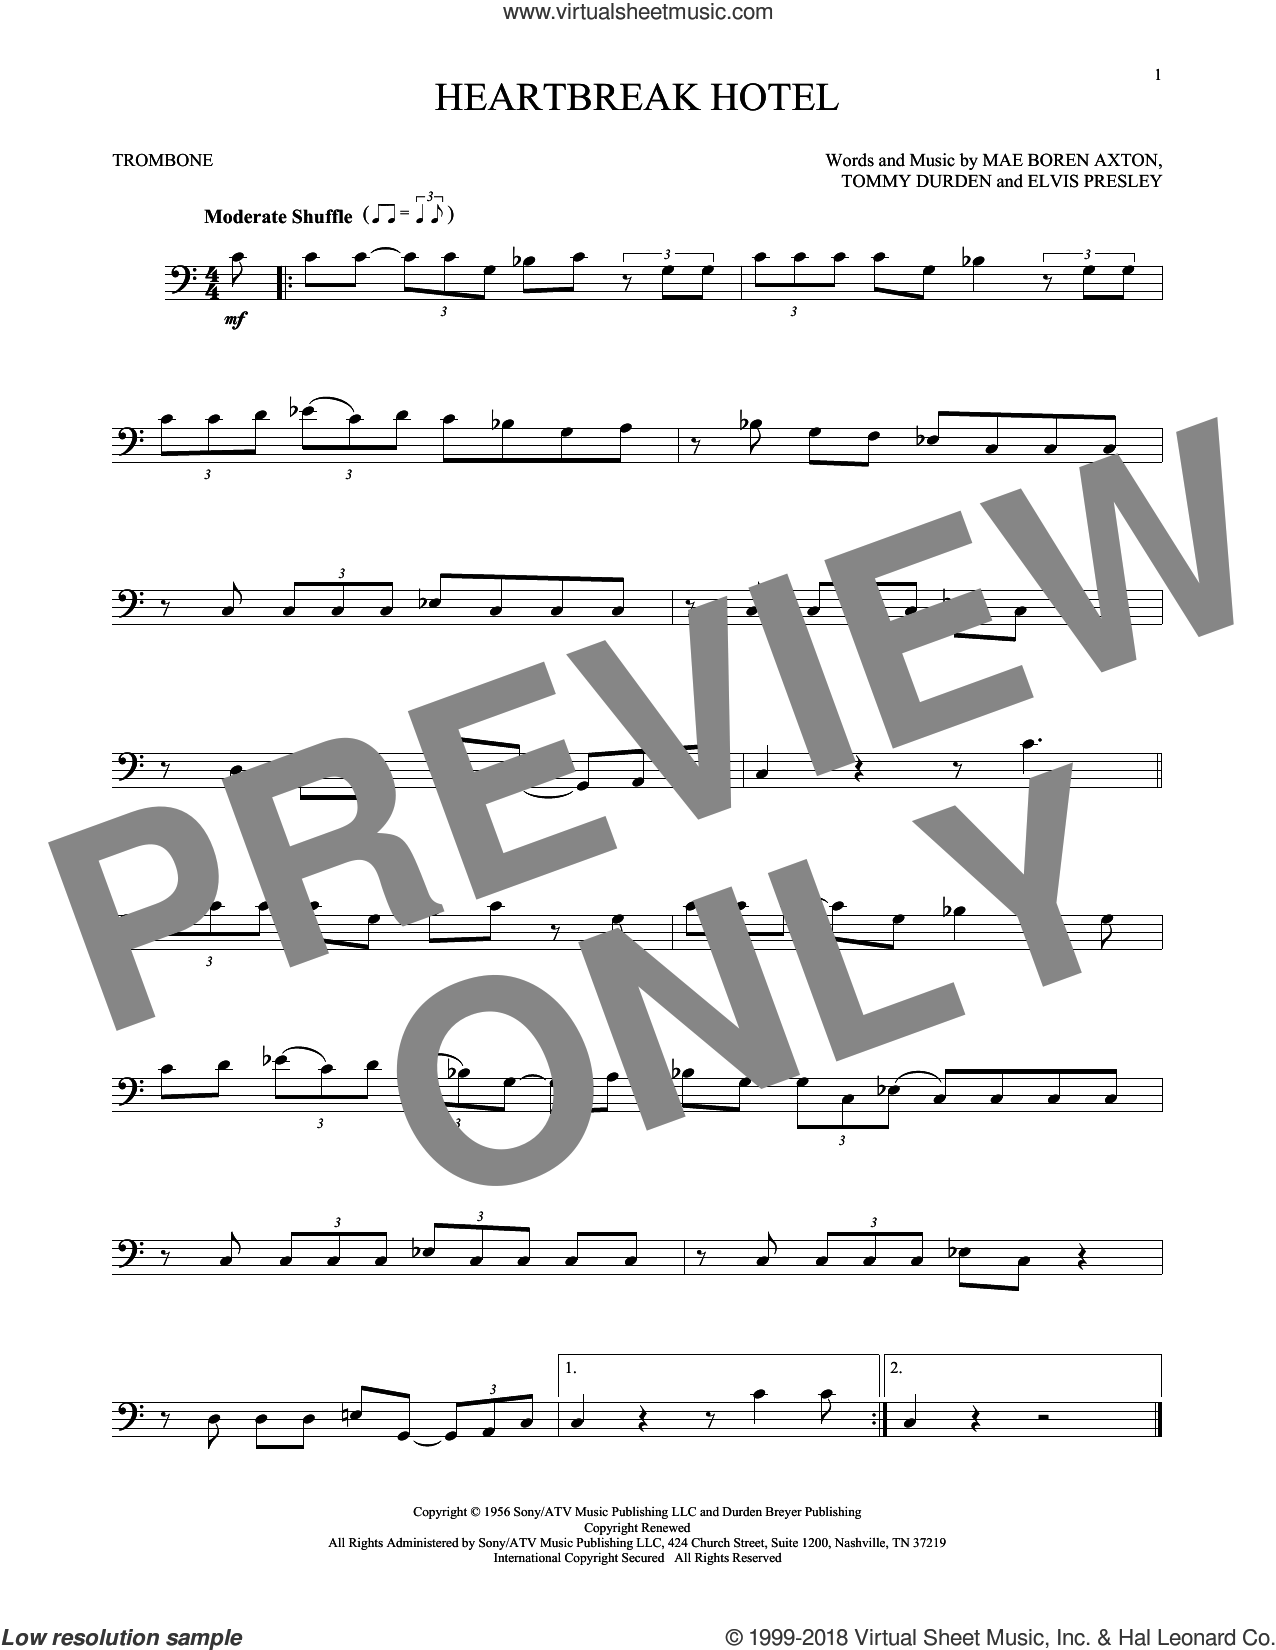 Heartbreak Hotel sheet music for trombone solo by Elvis Presley, Mae Boren Axton and Tommy Durden, intermediate skill level